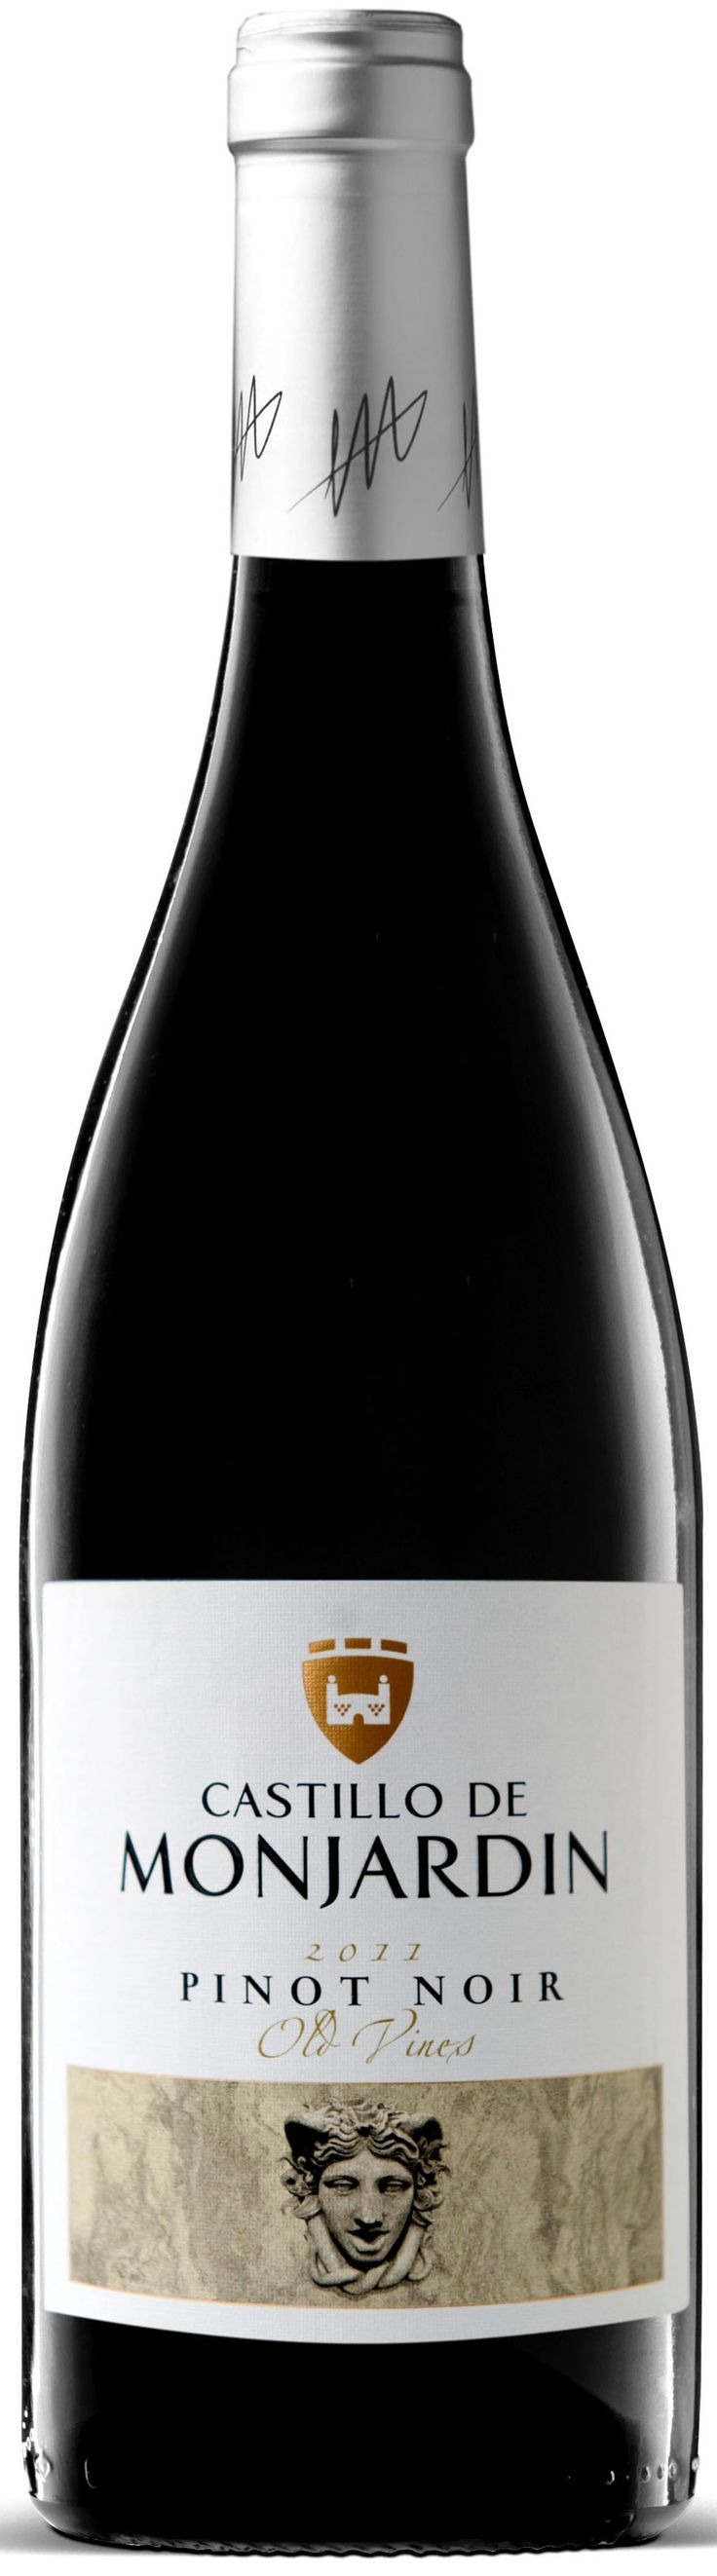 Castillo de Monjardin Pinot Noir 2011—with its too-good-to-be-true price, too oaky and way too harsh, lacking the grace and subtlety that should define this varietal; enjoyable only after a long time to breathe, and only with a side of blue cheese; PLN 35 from El Catador